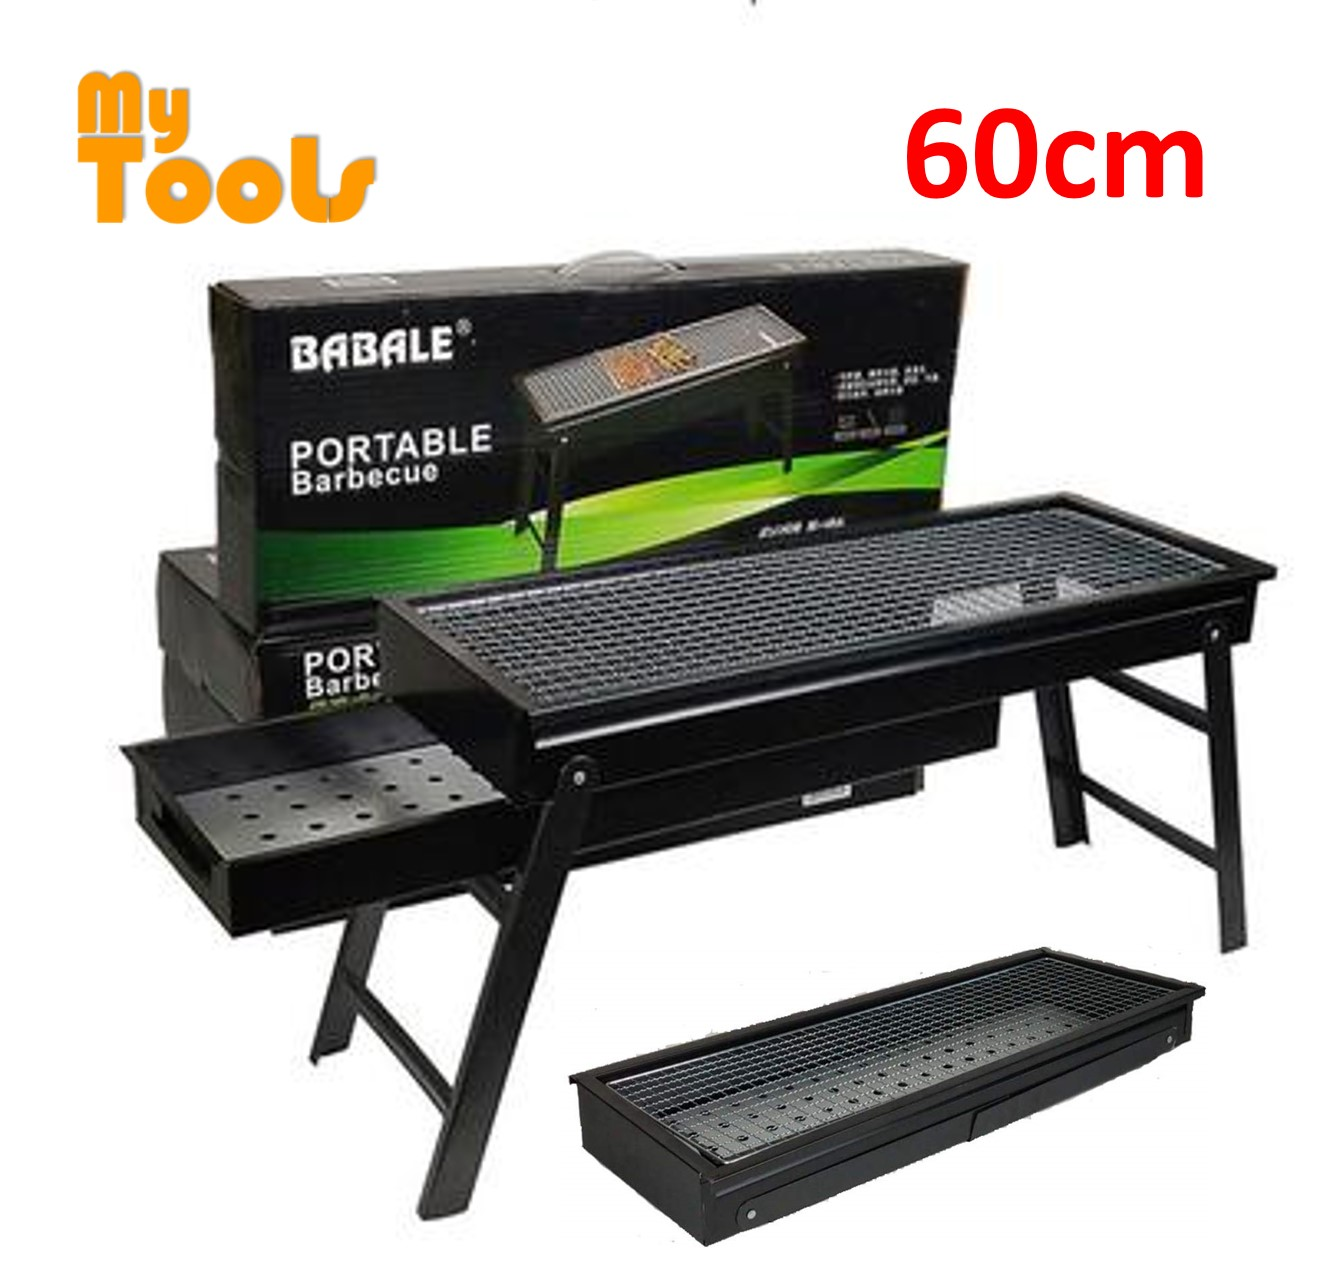 Mytools 60CM Portable Folding Barbecue Stand Japanese Style Stove BBQ Grill Outdoor